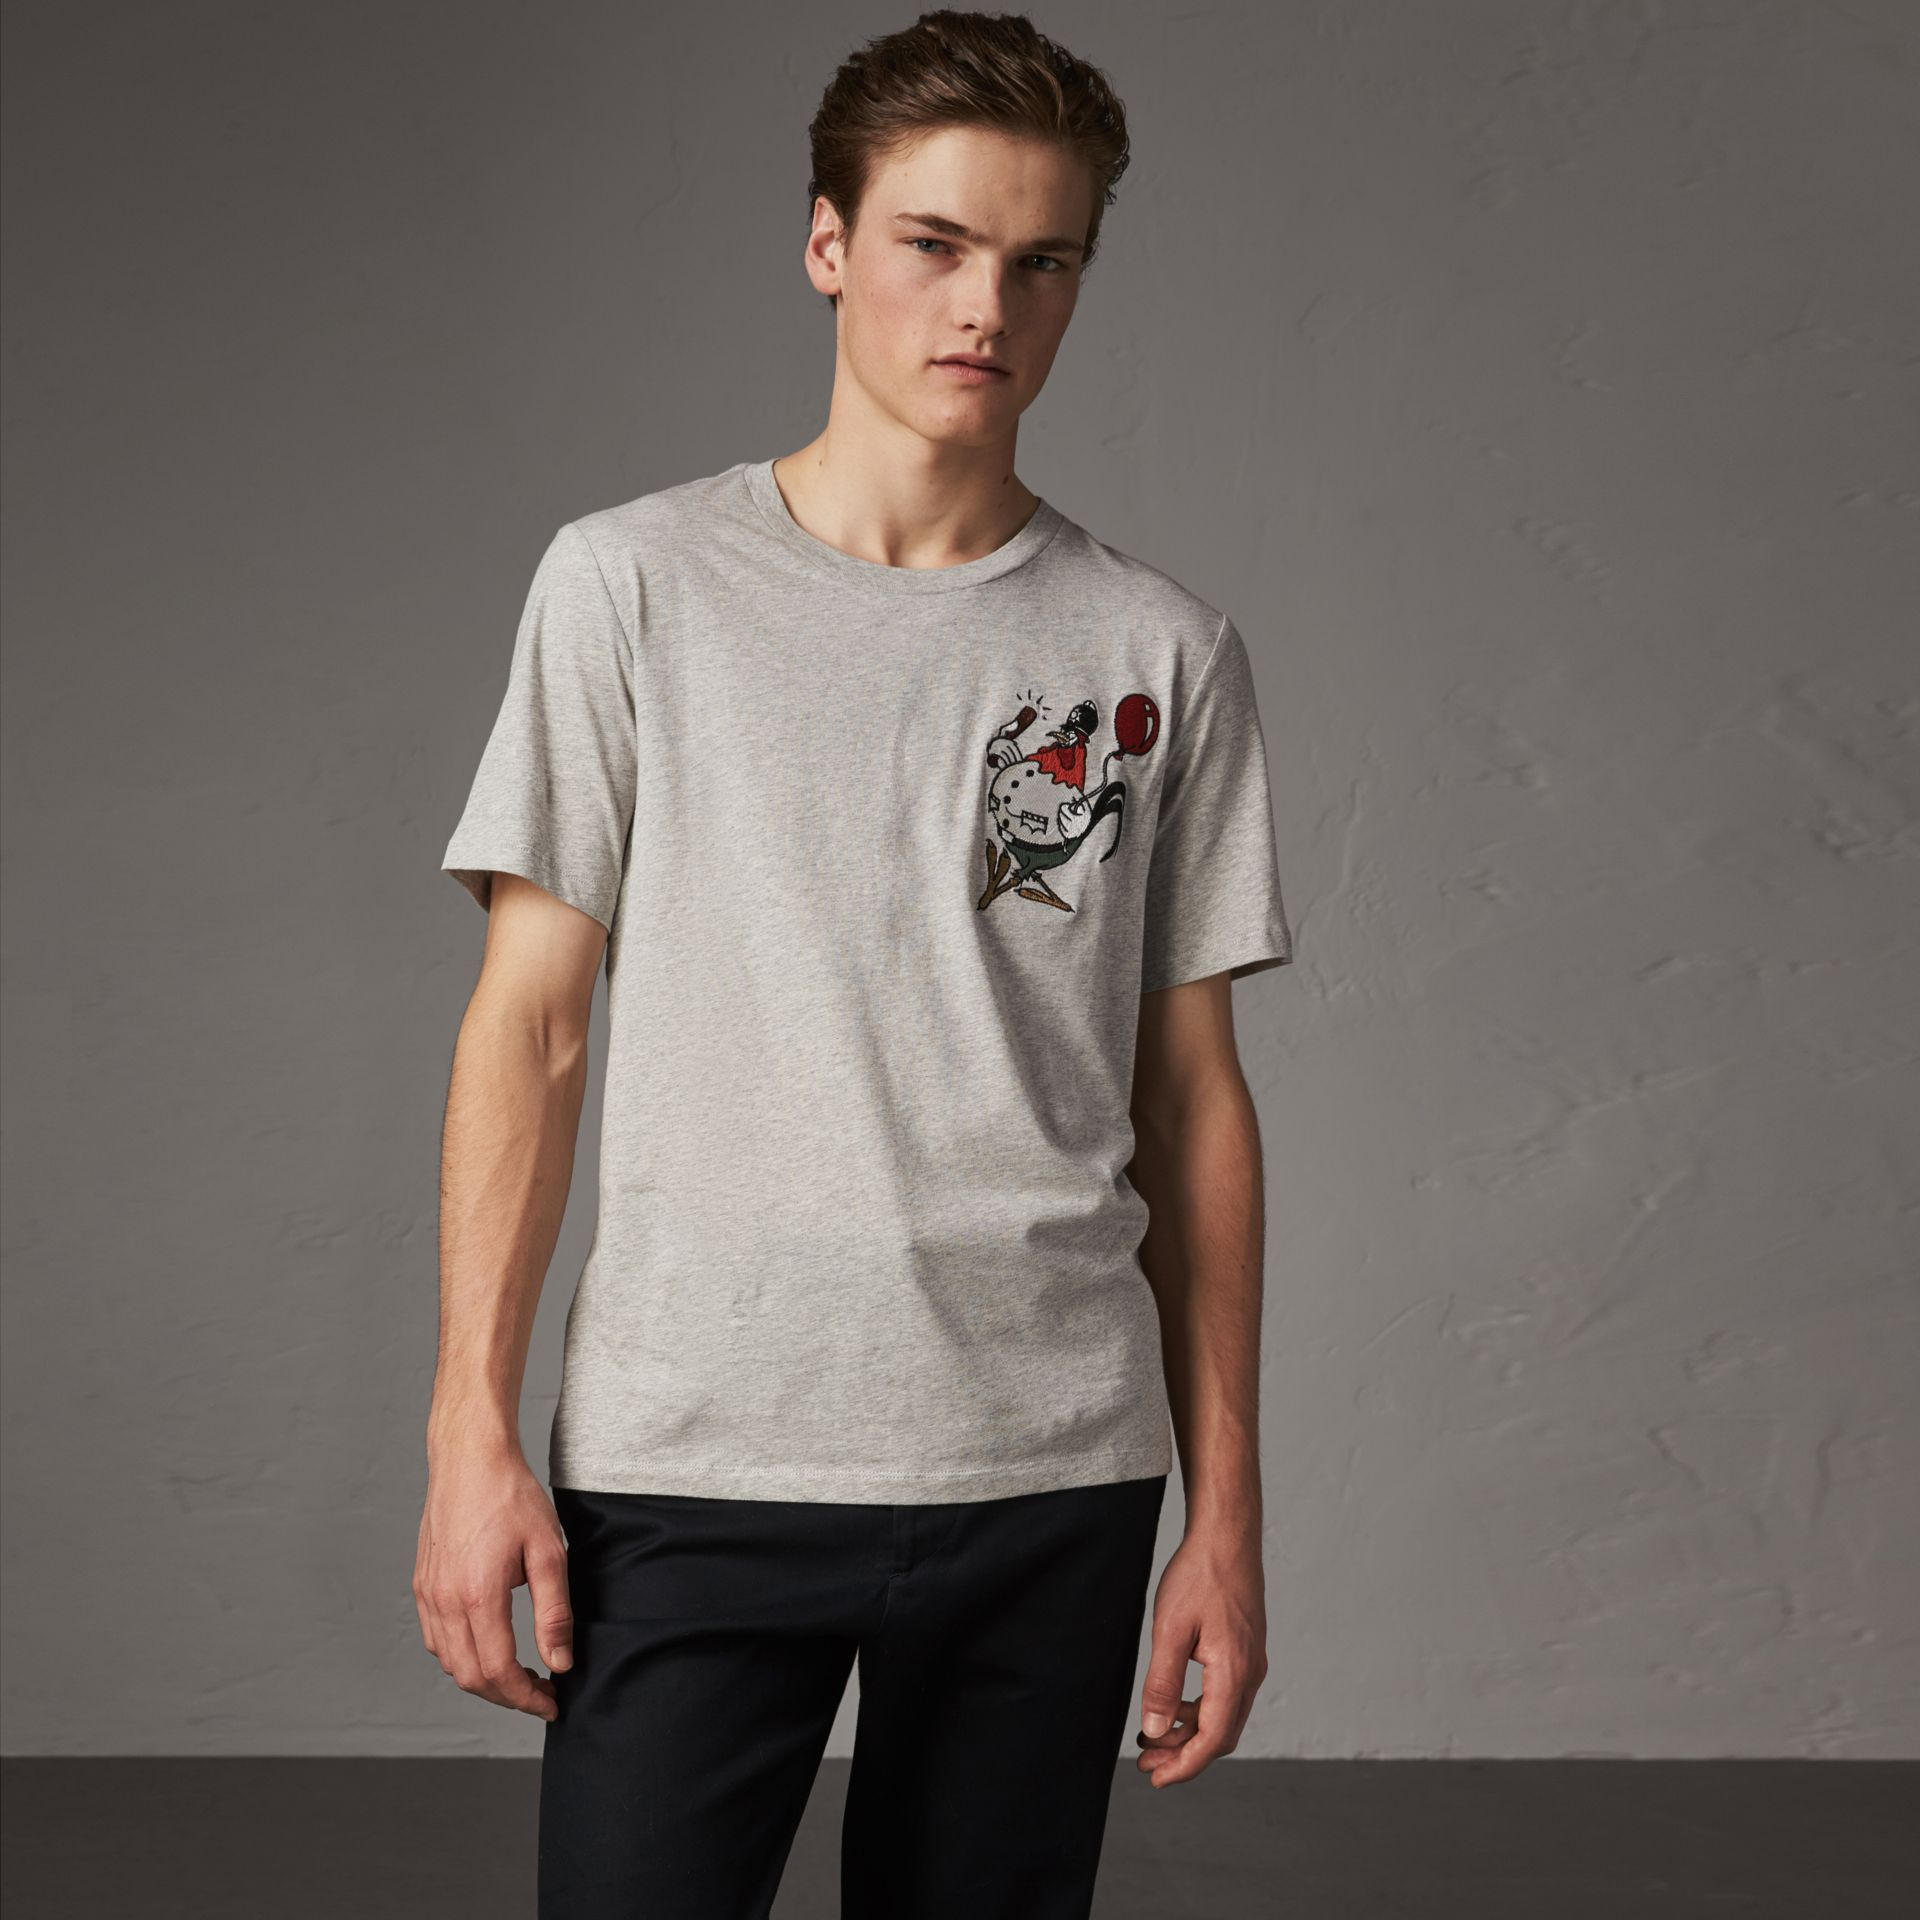 Sketch Appliqué Cotton T-shirt in Pale Grey Melange - Men | Burberry - gallery image 0